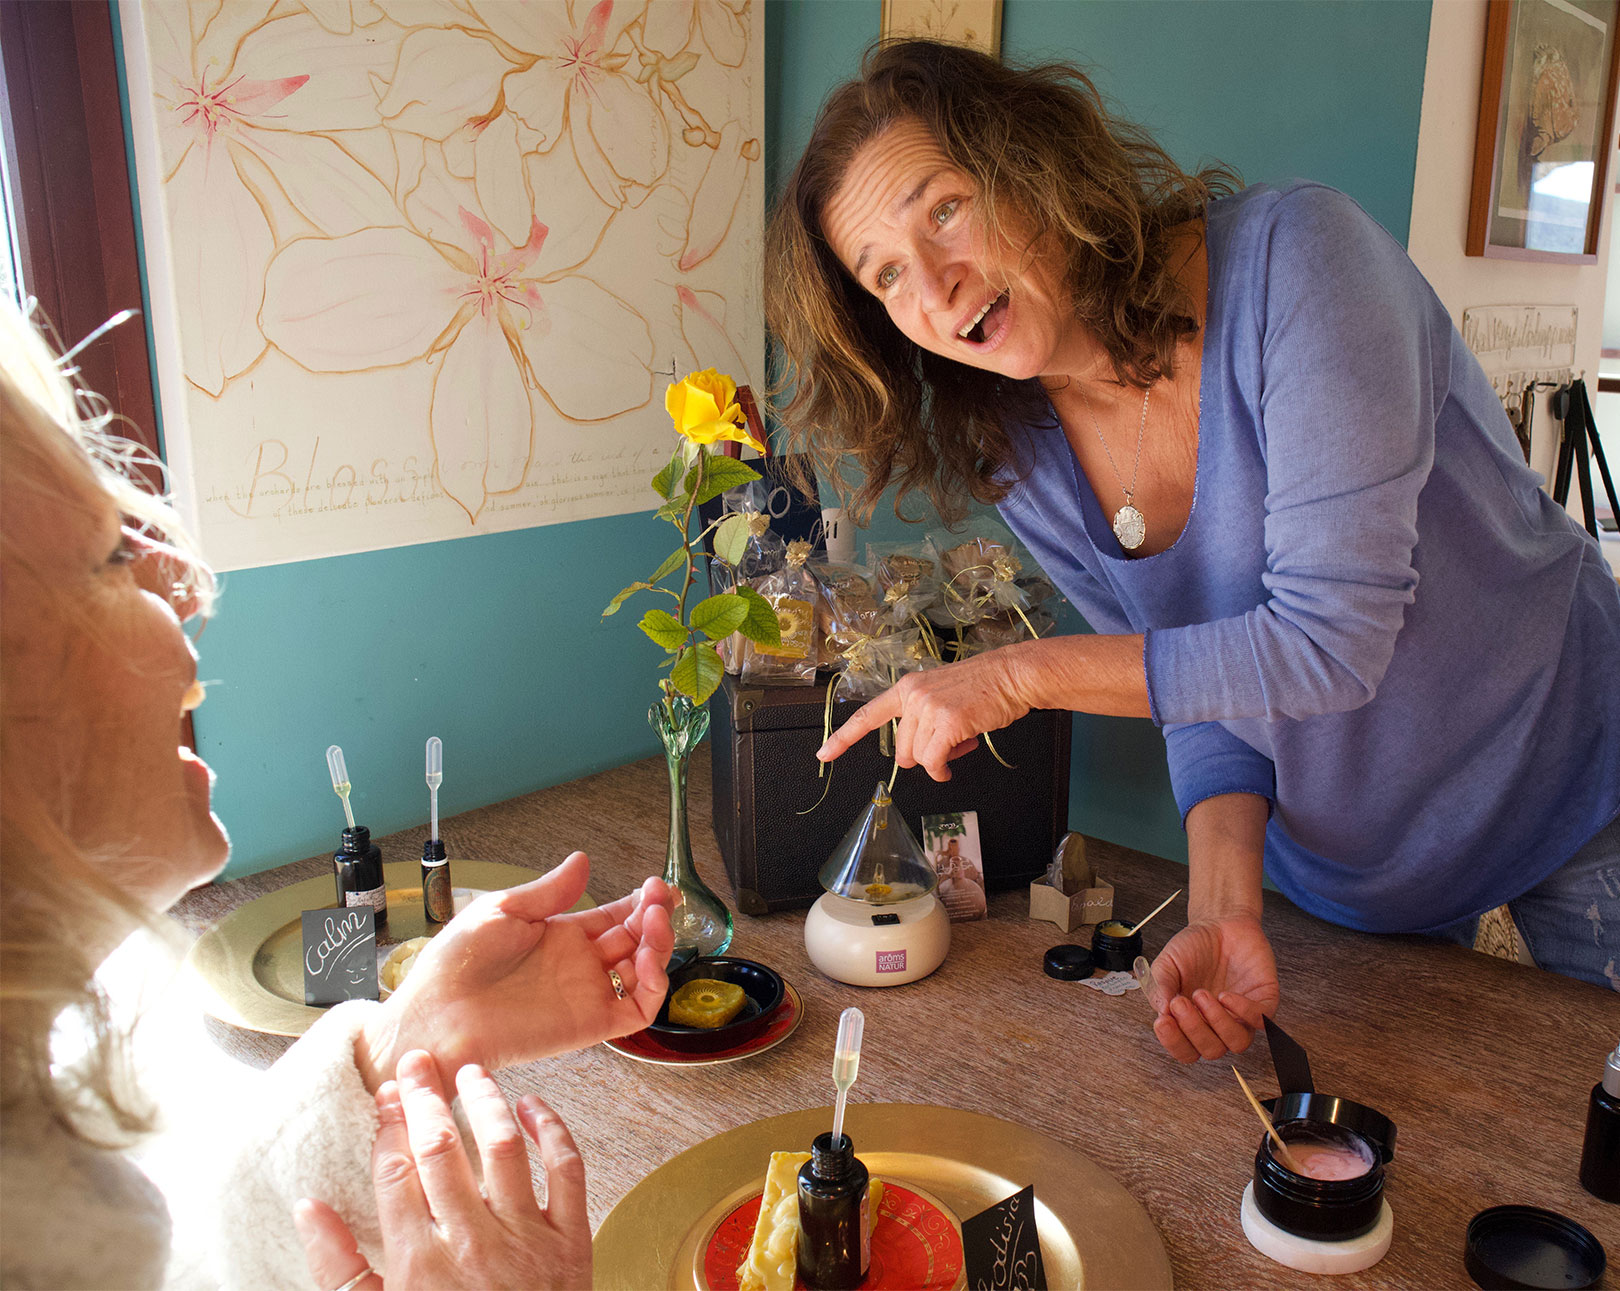 Bettina-Papenkort,-Indigo-Spa,-customer-and-creams Indigo Spa, Hidden Paradise of Well-being  - PenAndWok.com - Cecilie's PenAndWok.com